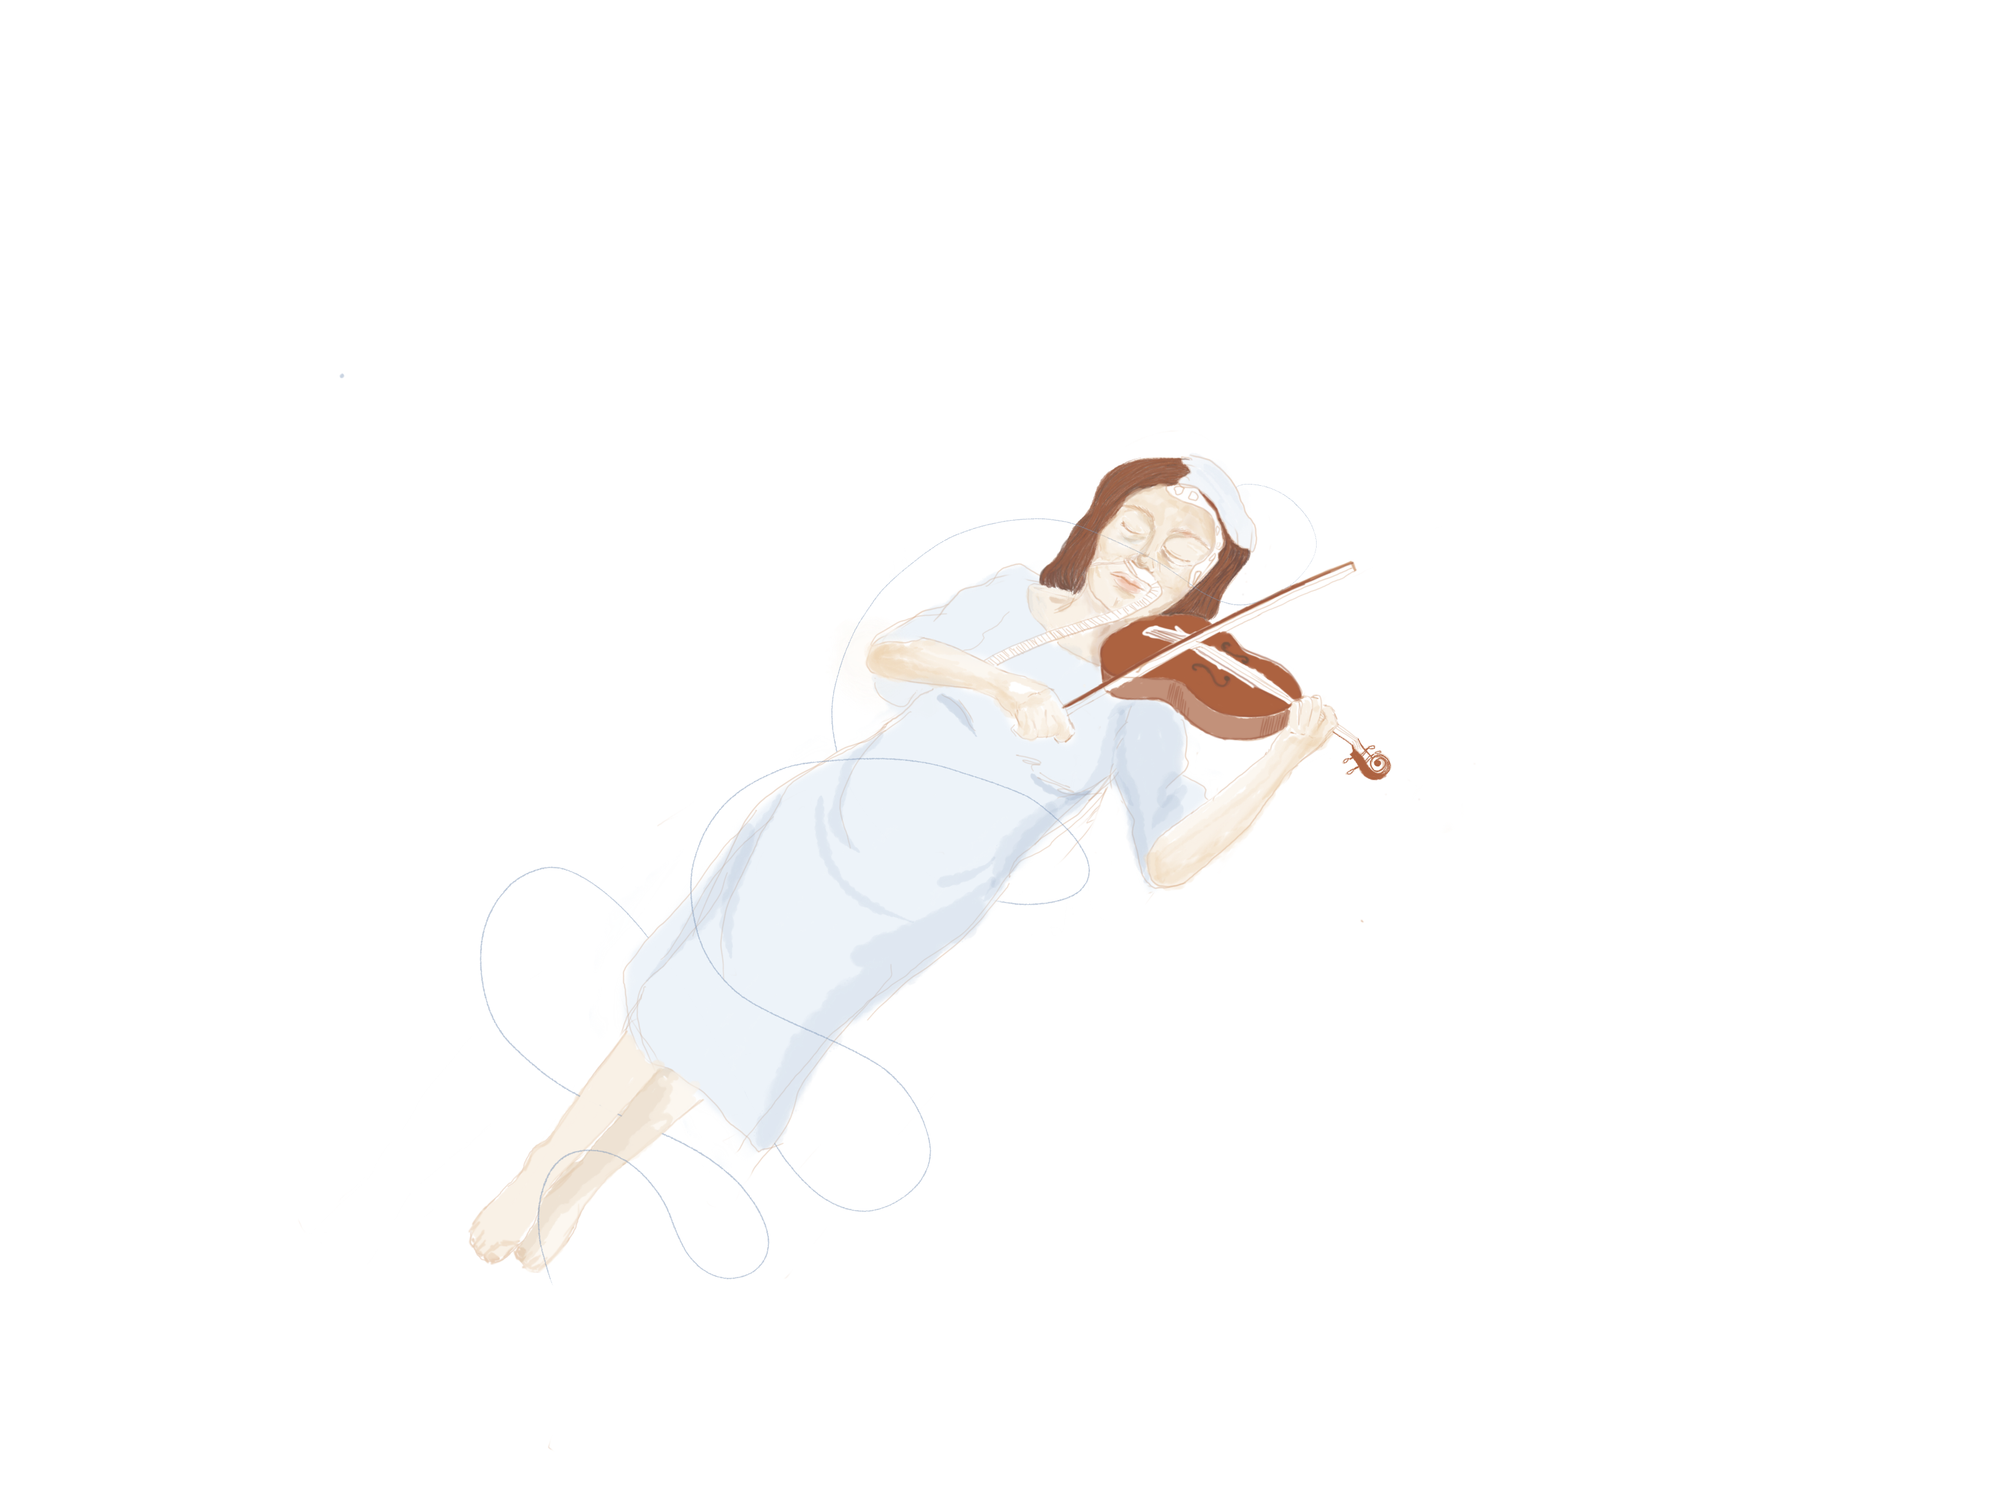 Artwork depicting a patient playing the violin